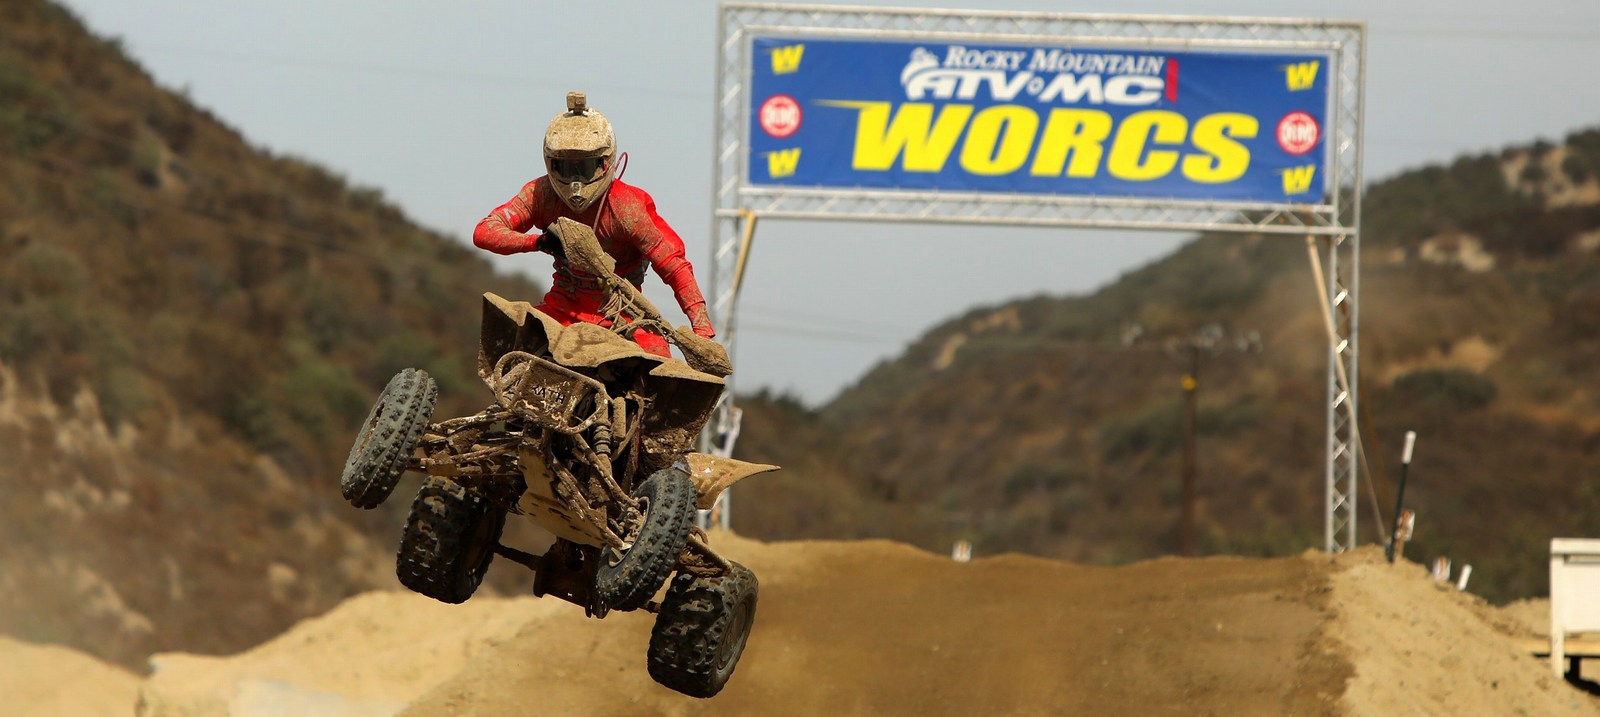 2019-06-logan-huff-atv-pro-worcs-racing